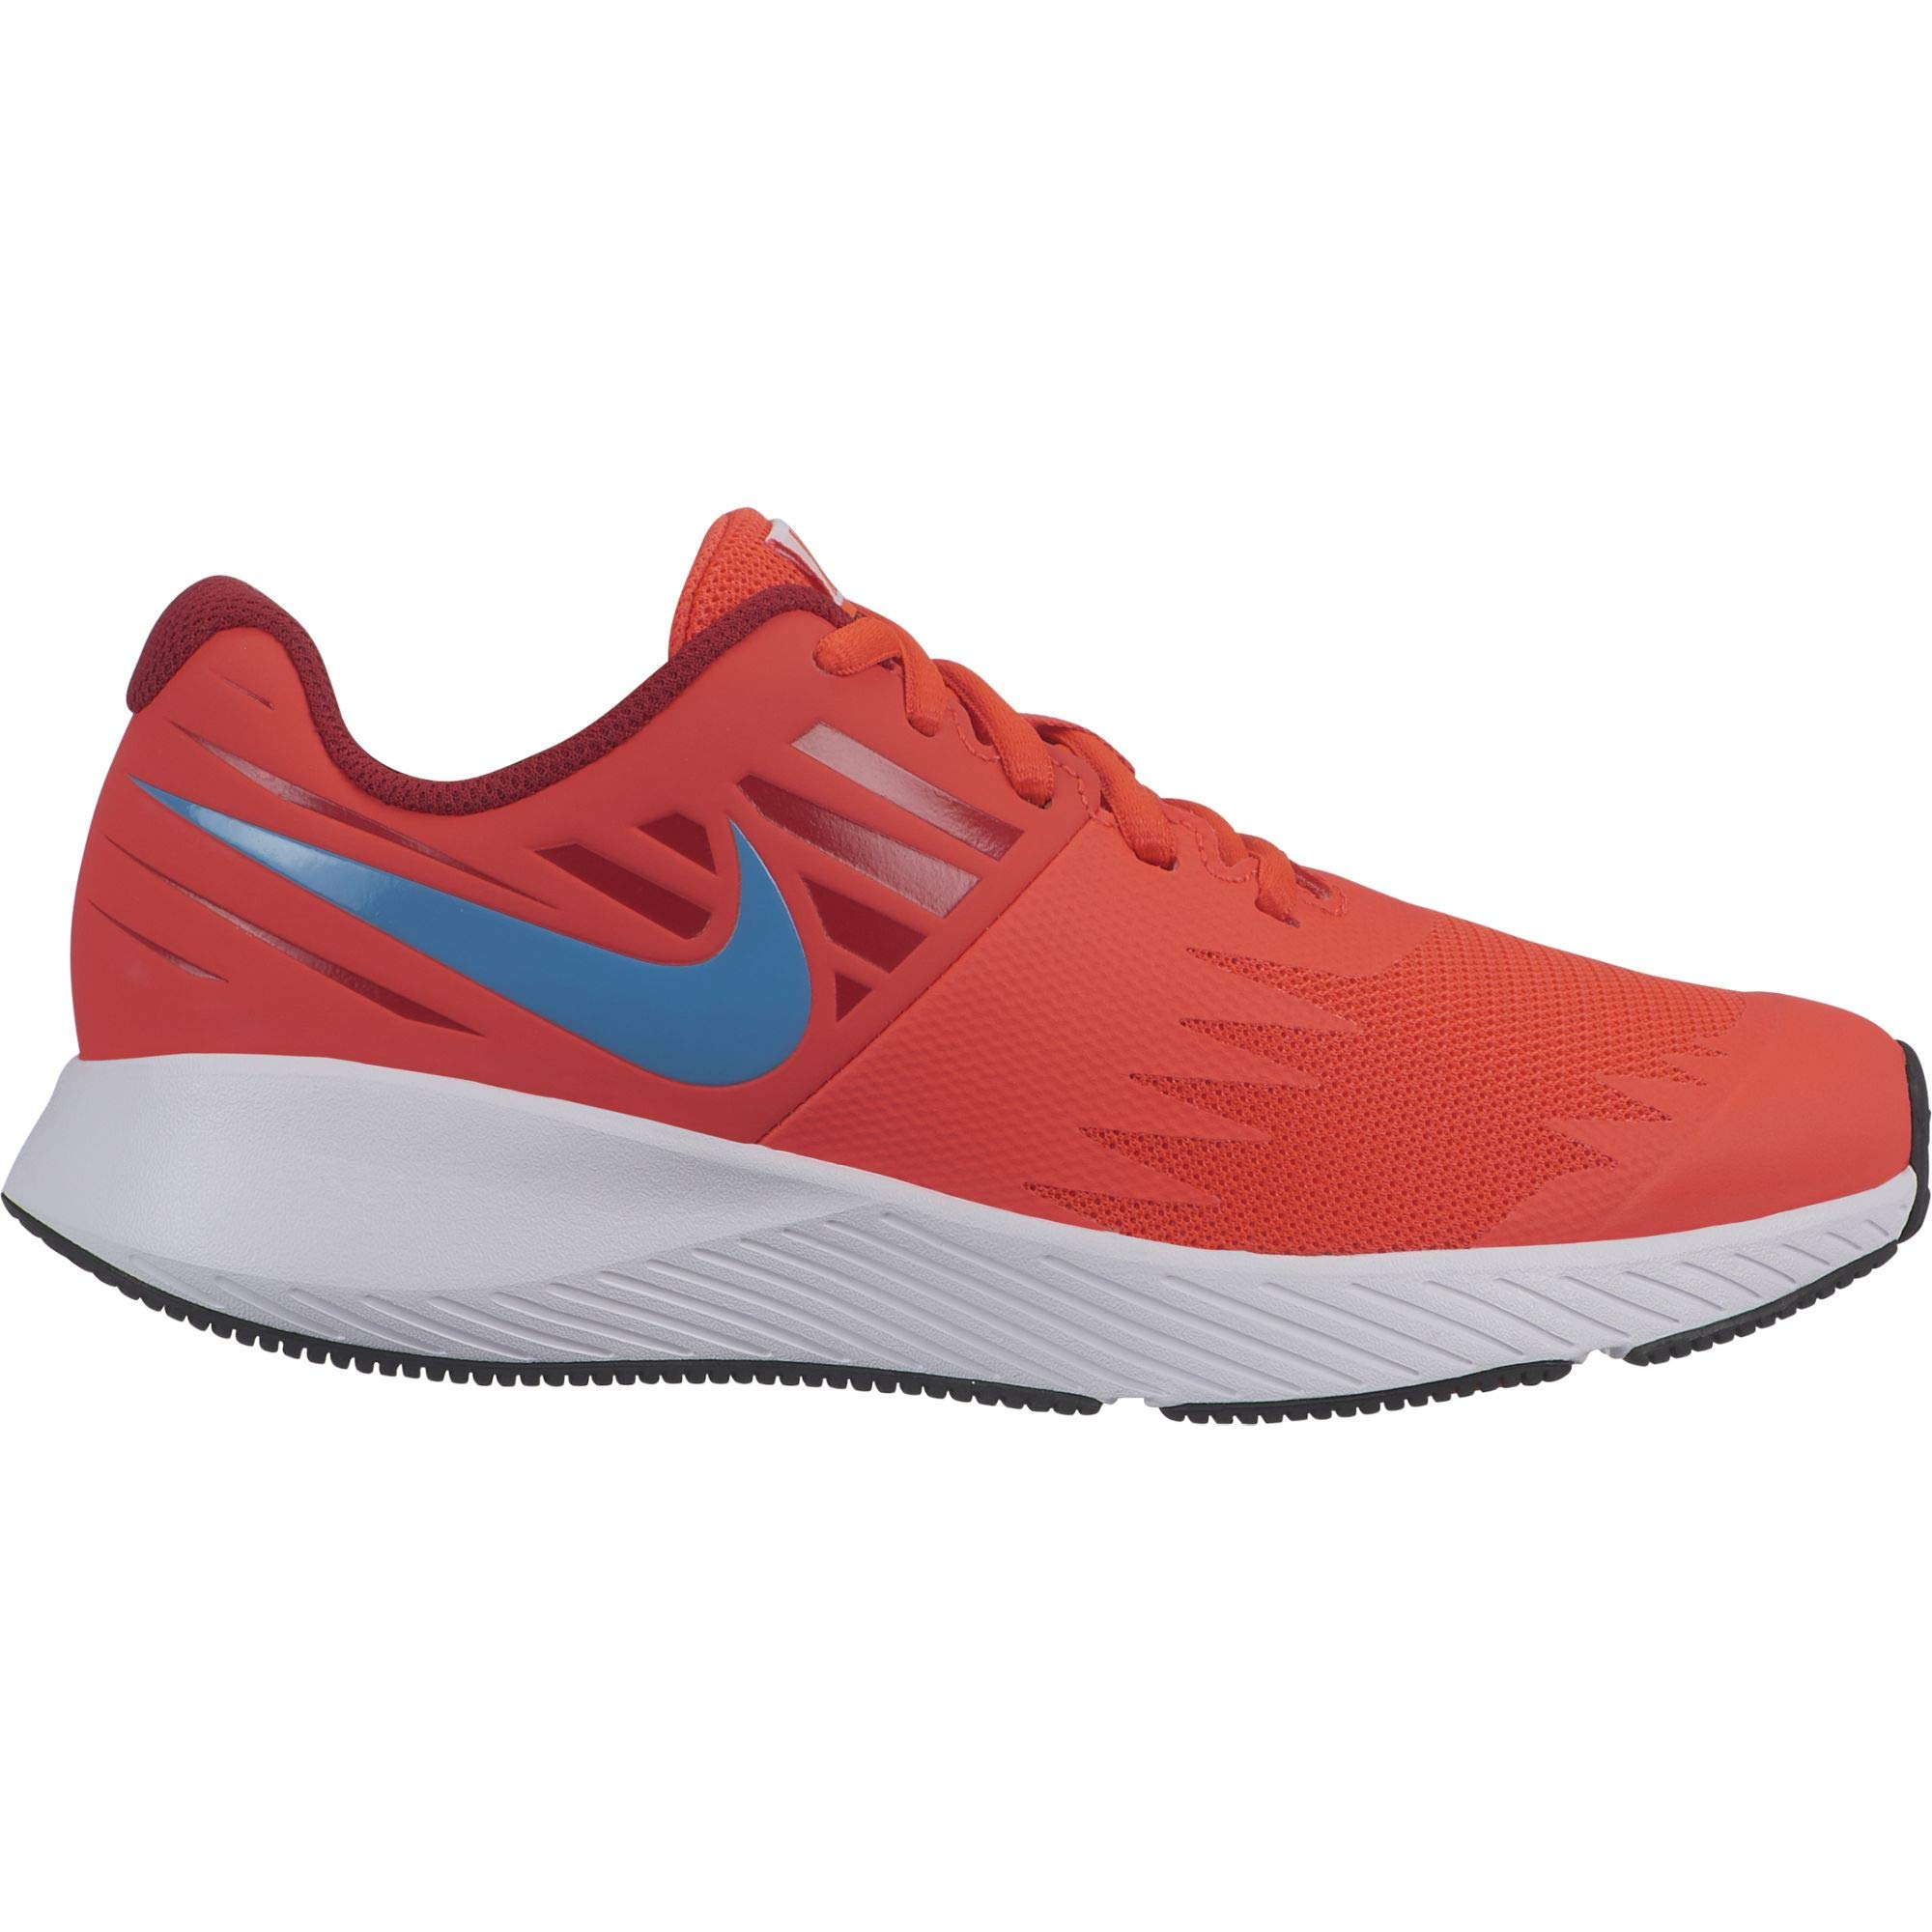 Nike Boy's Star Runner (GS) Running Shoe Bright Crimson/Blue Lagoon/Gym Red/White Size 3.5 M US by Nike (Image #1)